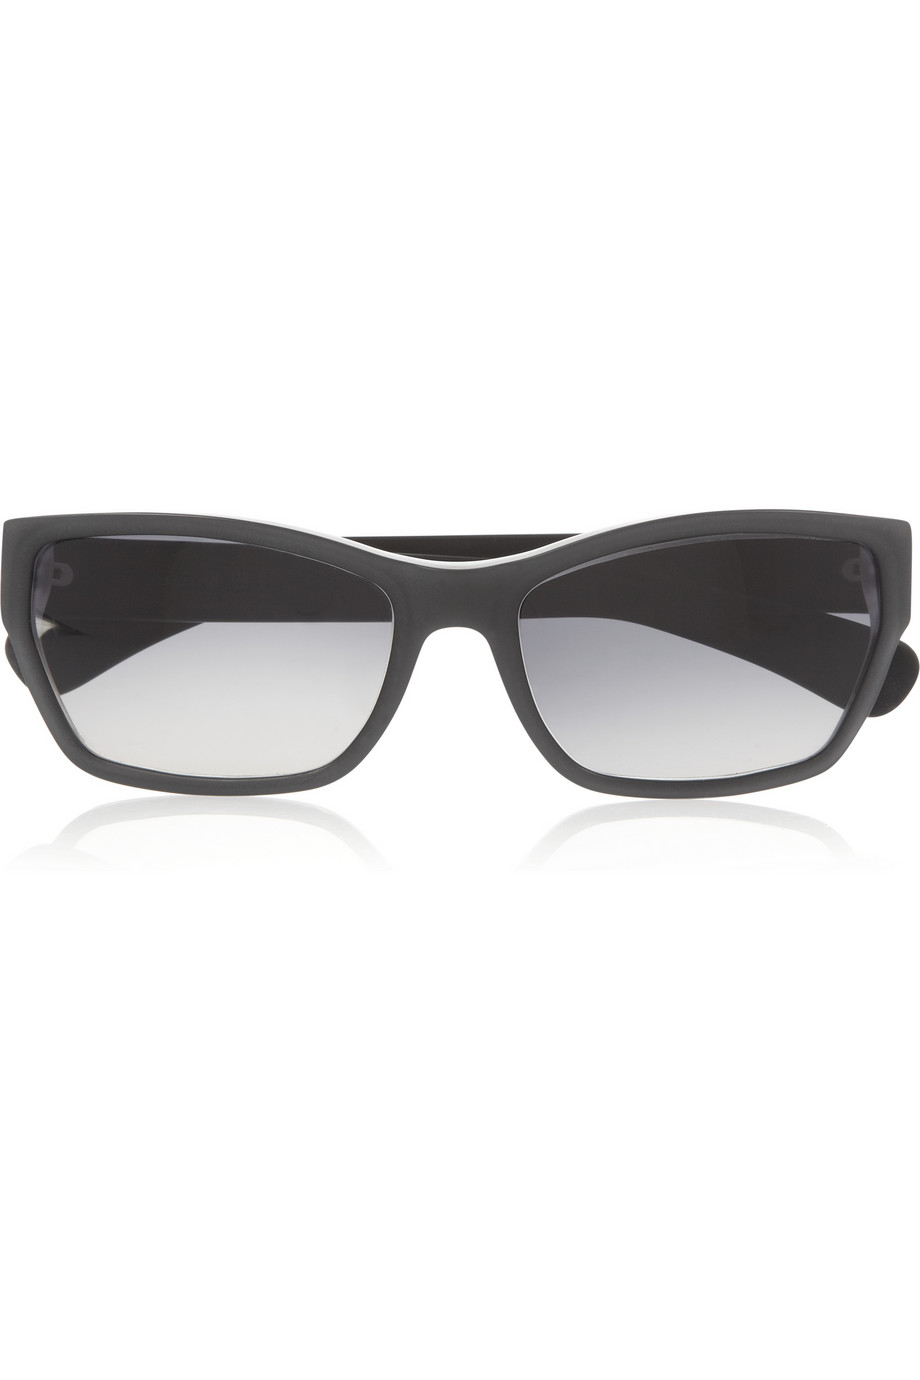 23fe9797ec Gallery. Previously sold at  THE OUTNET.COM · Women s Acetate Sunglasses